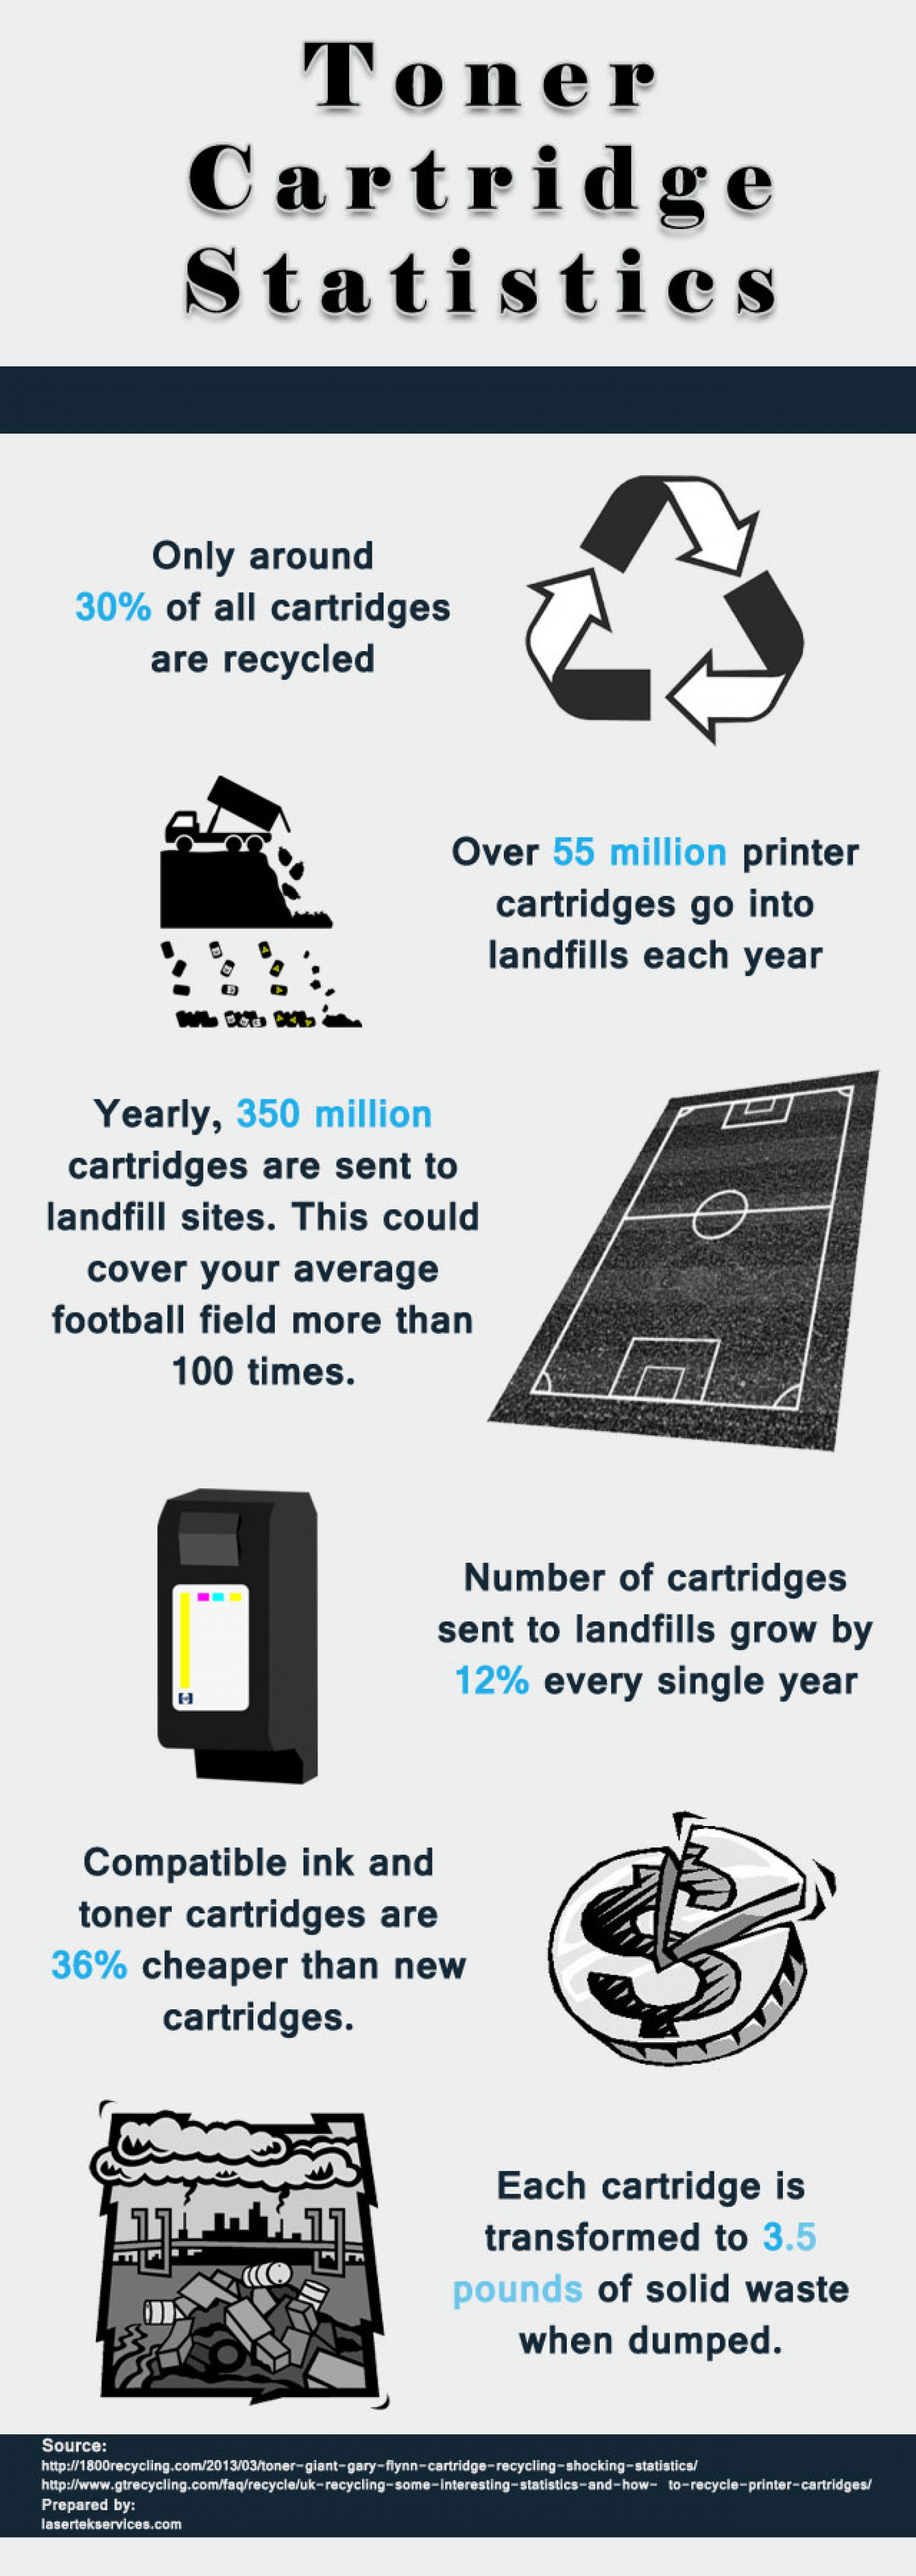 Toner Cartridge Statistics Infographic